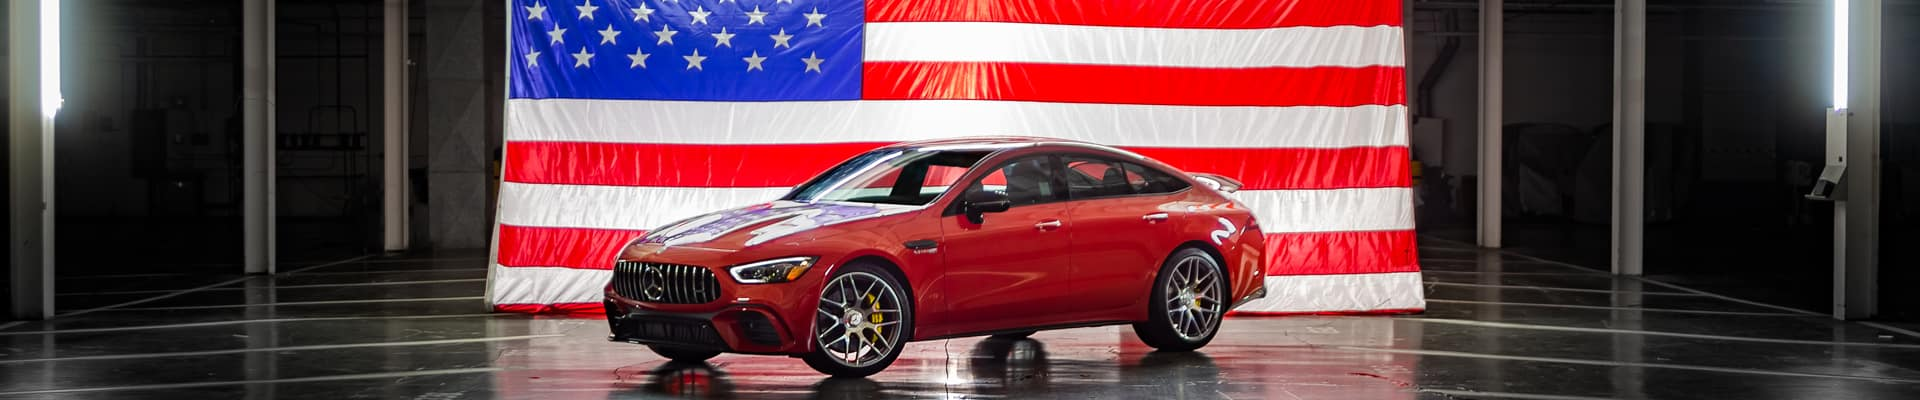 Mercedes-Benz Labor Day Sales Event